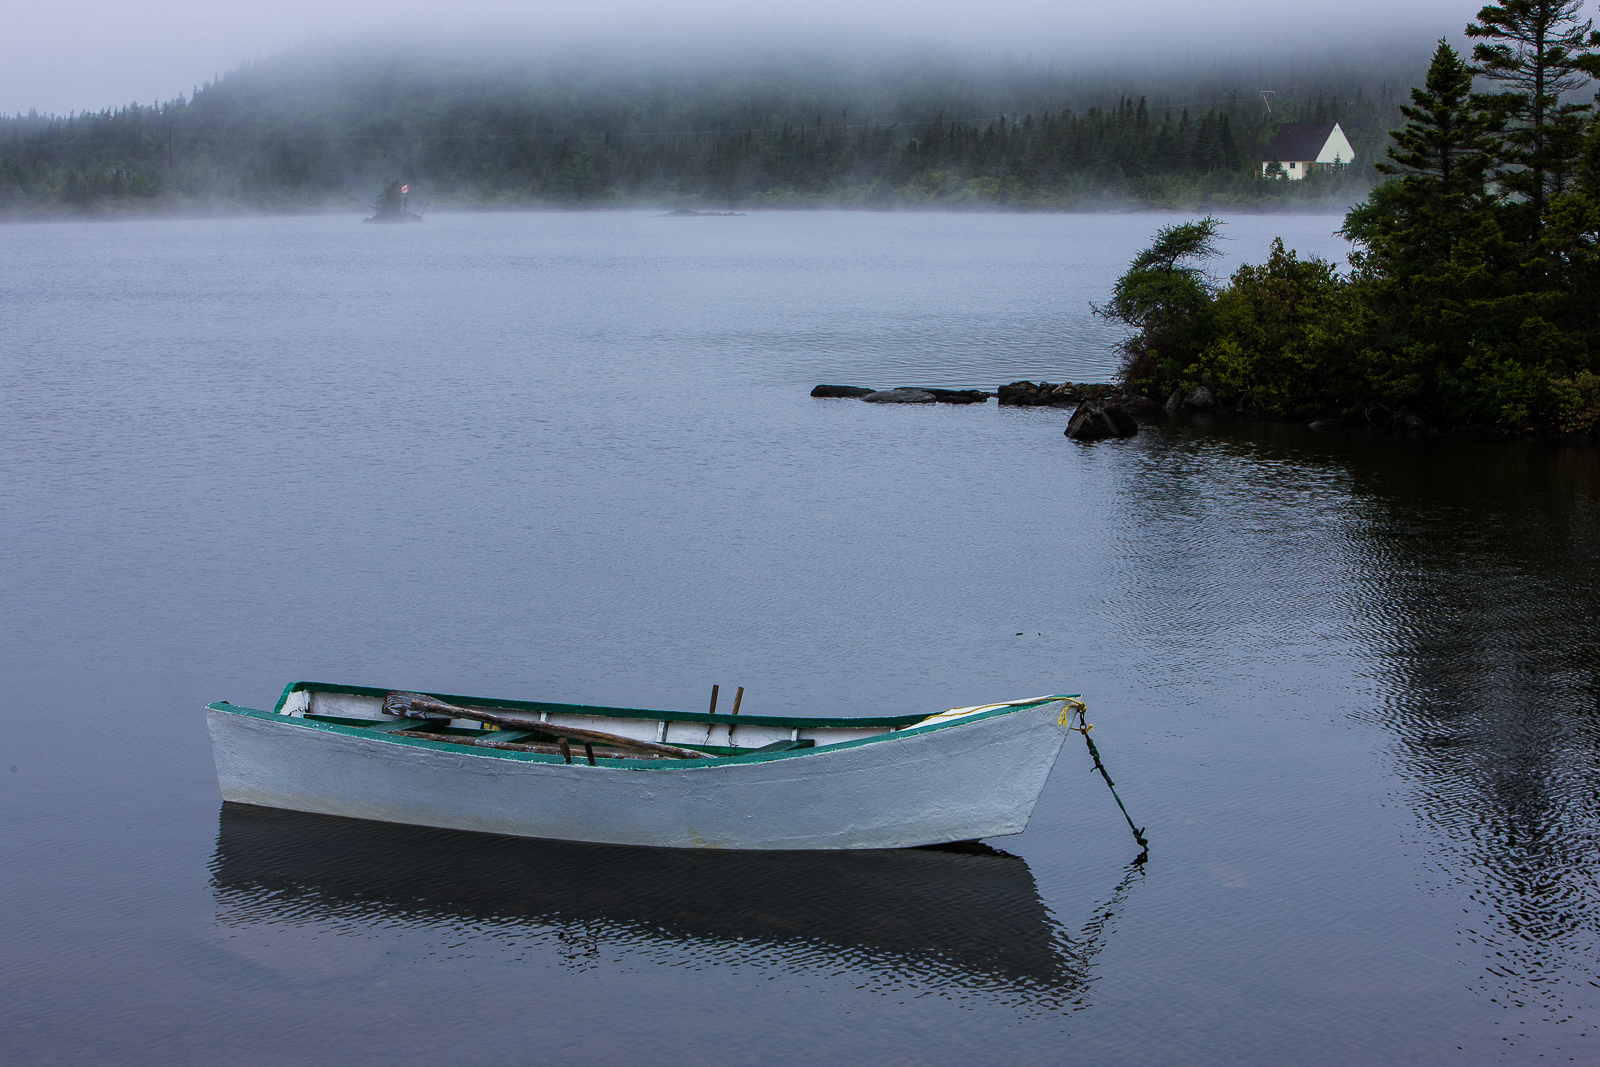 Memories Await,Memories, Await,Newfoundland, Canada,summer,water,green,horizontal, photo